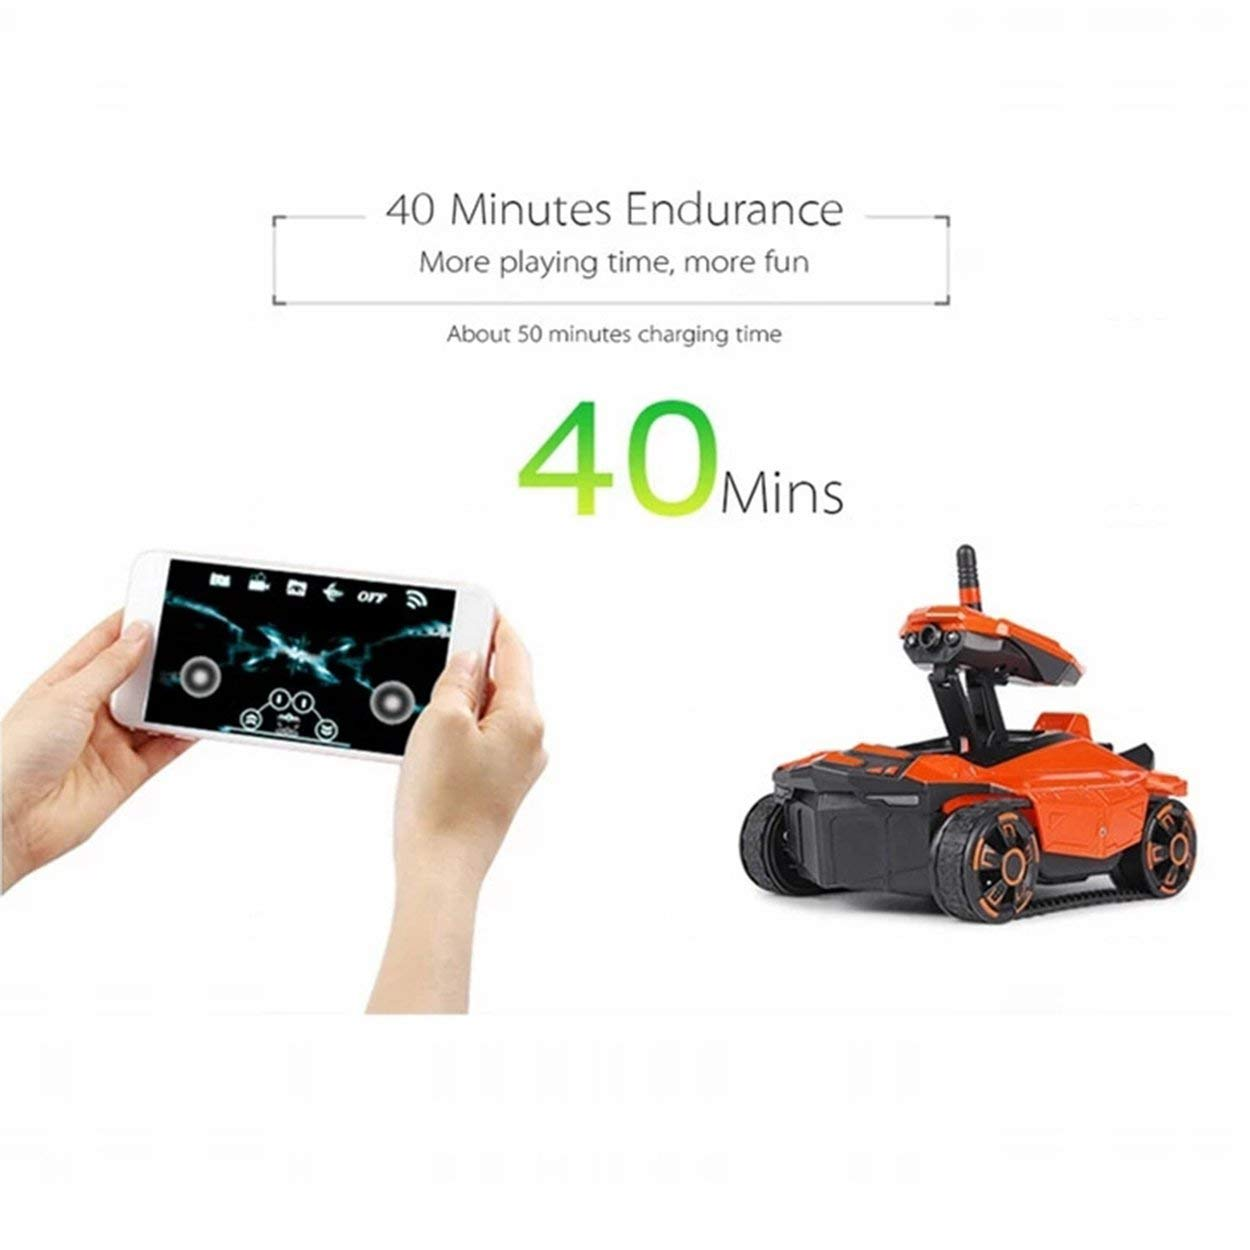 anyilon ATTOP Remote Control Tank with HD Camera YD-211S 2.4G Tank RC Toy Phone Controlled Robot Tank Childrens Toy